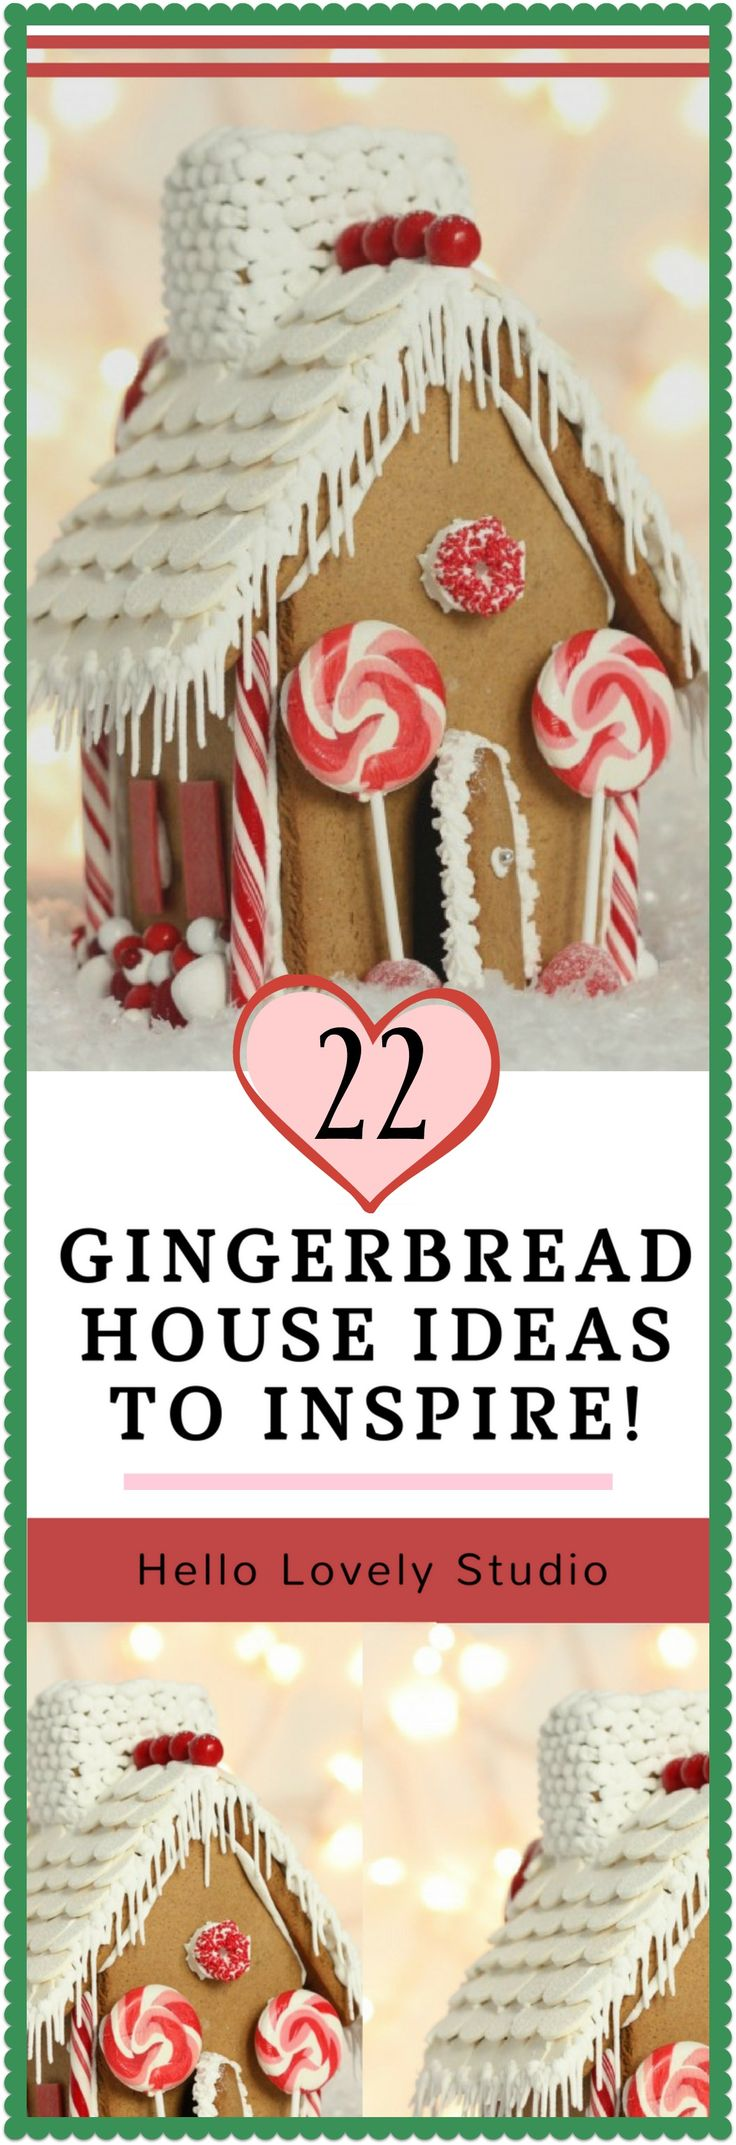 A Christmas craft for boys of any age and girls to grandmas! Ready to be inspired by the best gingerbread houses with their sweet candy embellishment and clever crafty construction? 22 Best Gingerbread House Ideas: Christmas Crafts! #holidayinspiration #gingerbreadhouse #christmascrafts